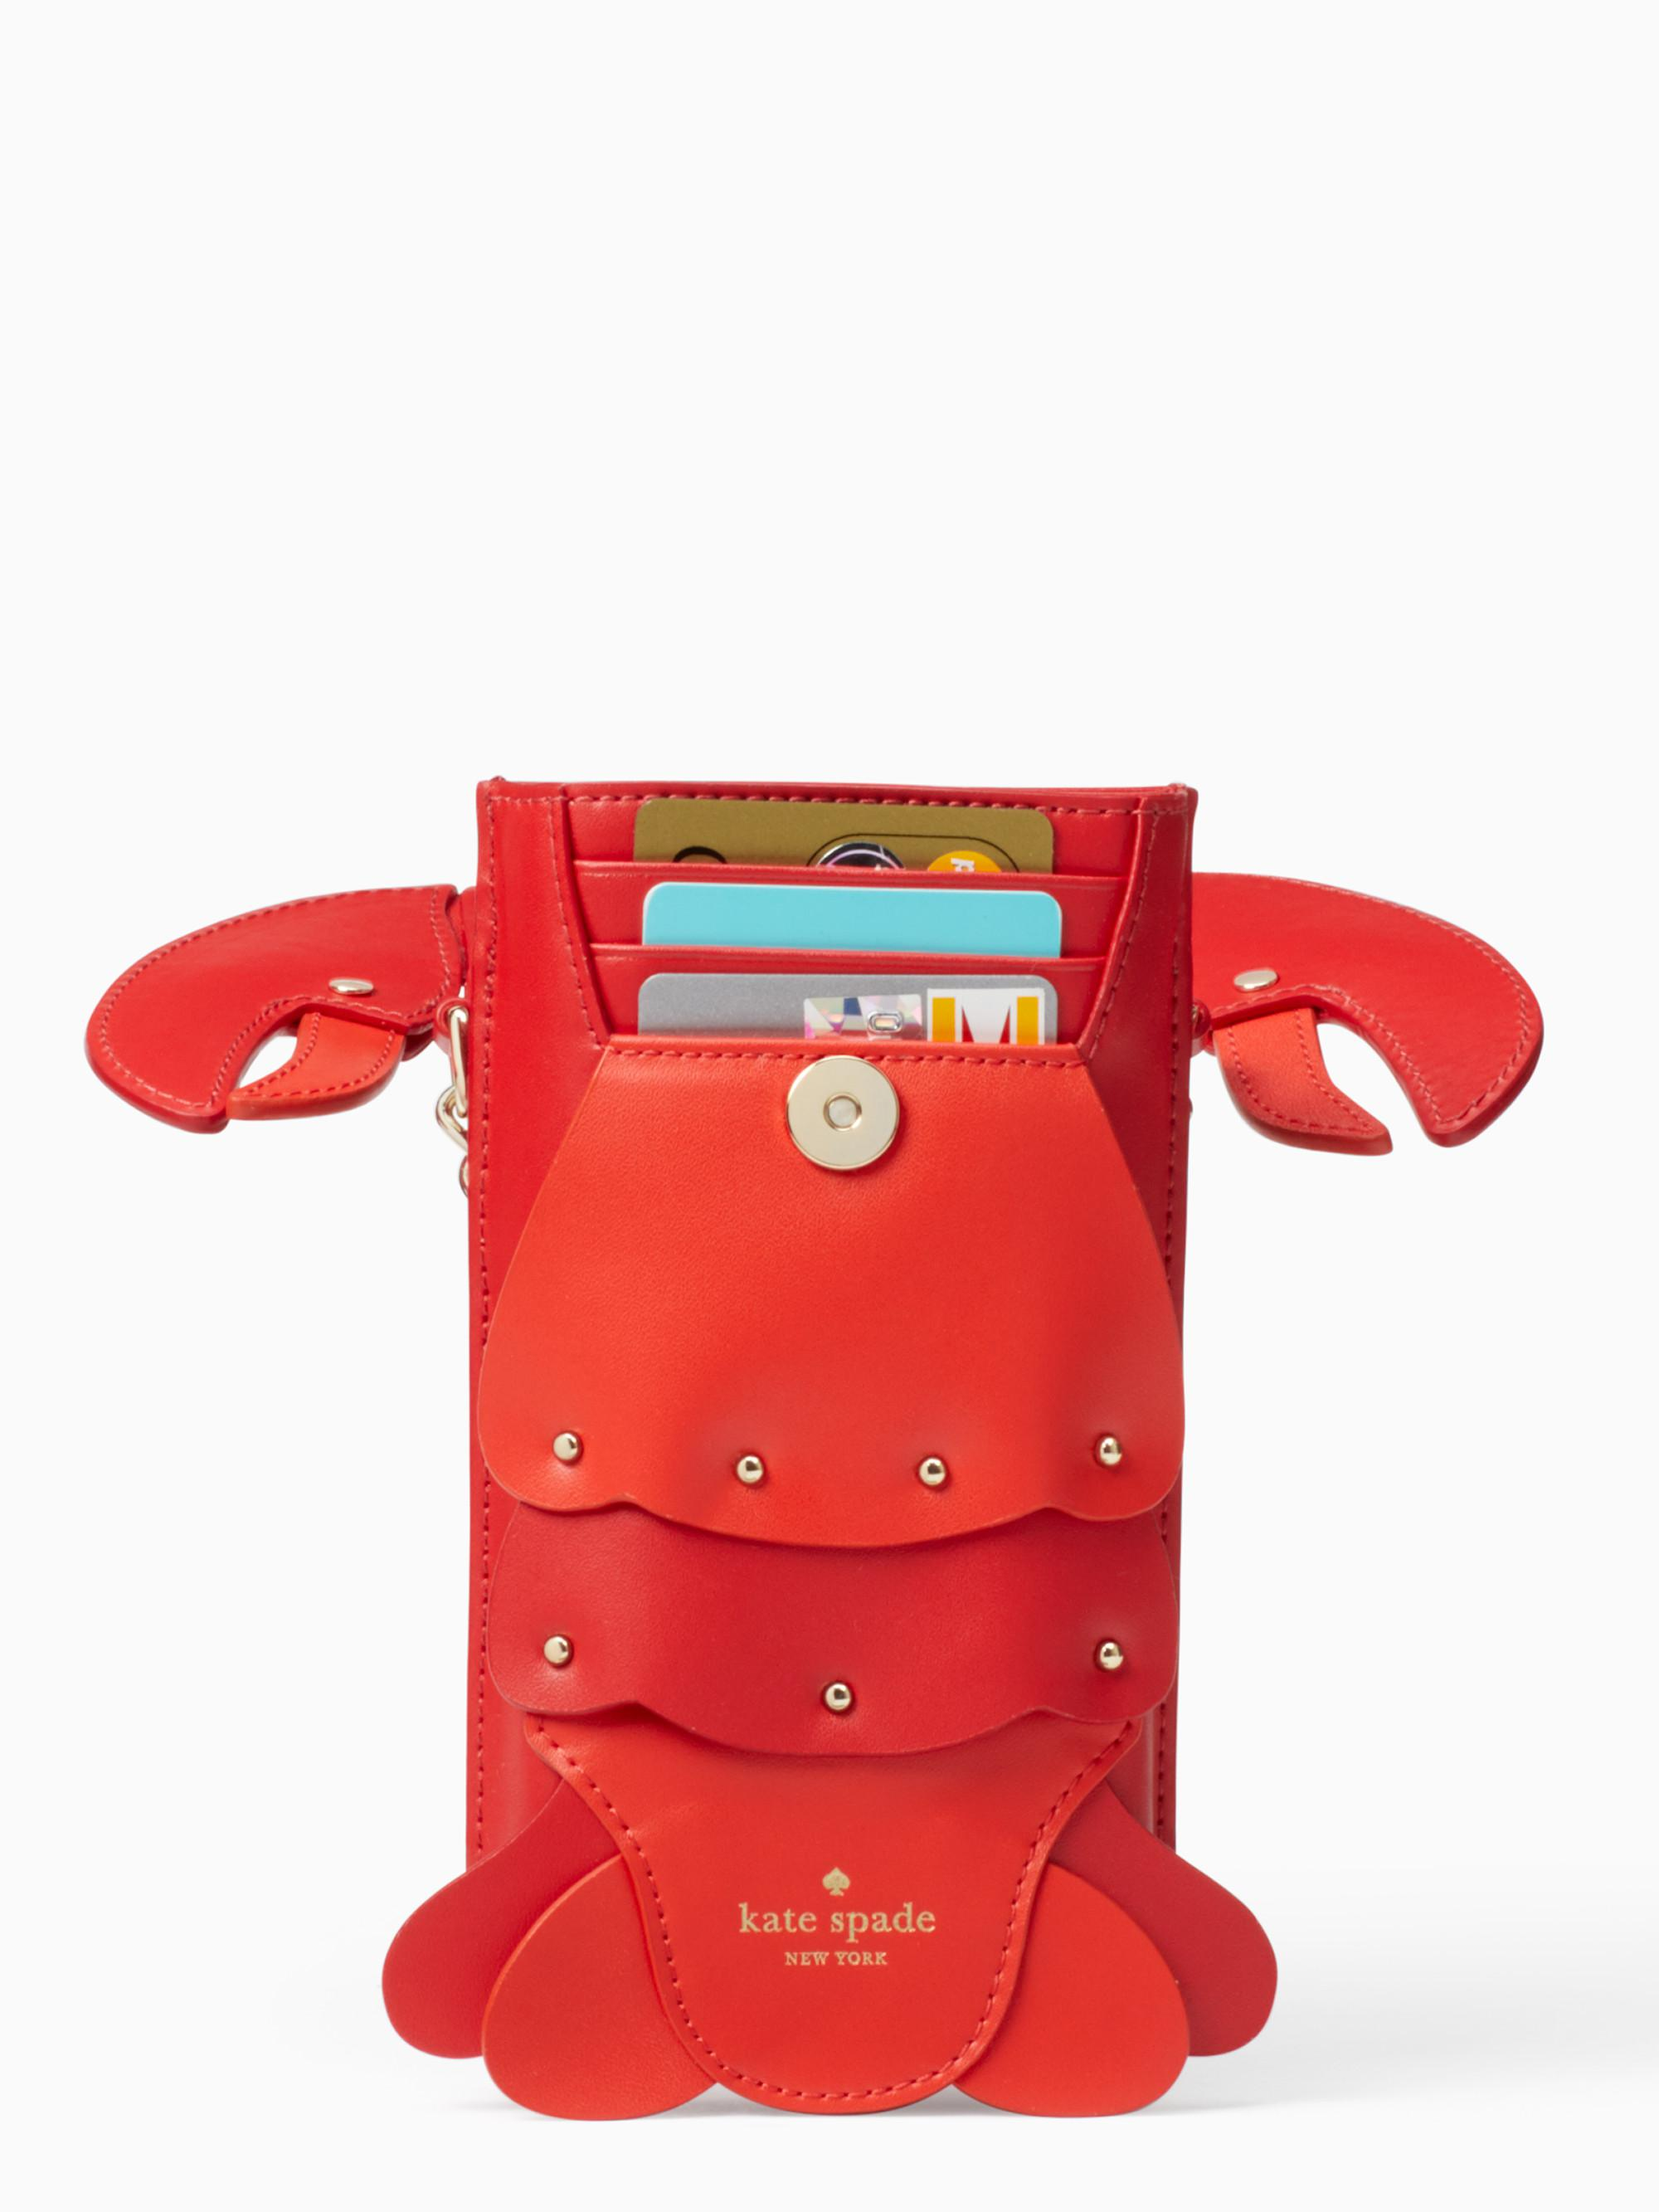 super popular b204c 5a76c Kate Spade Lobster North South Crossbody Iphone Cases Case in Red - Lyst